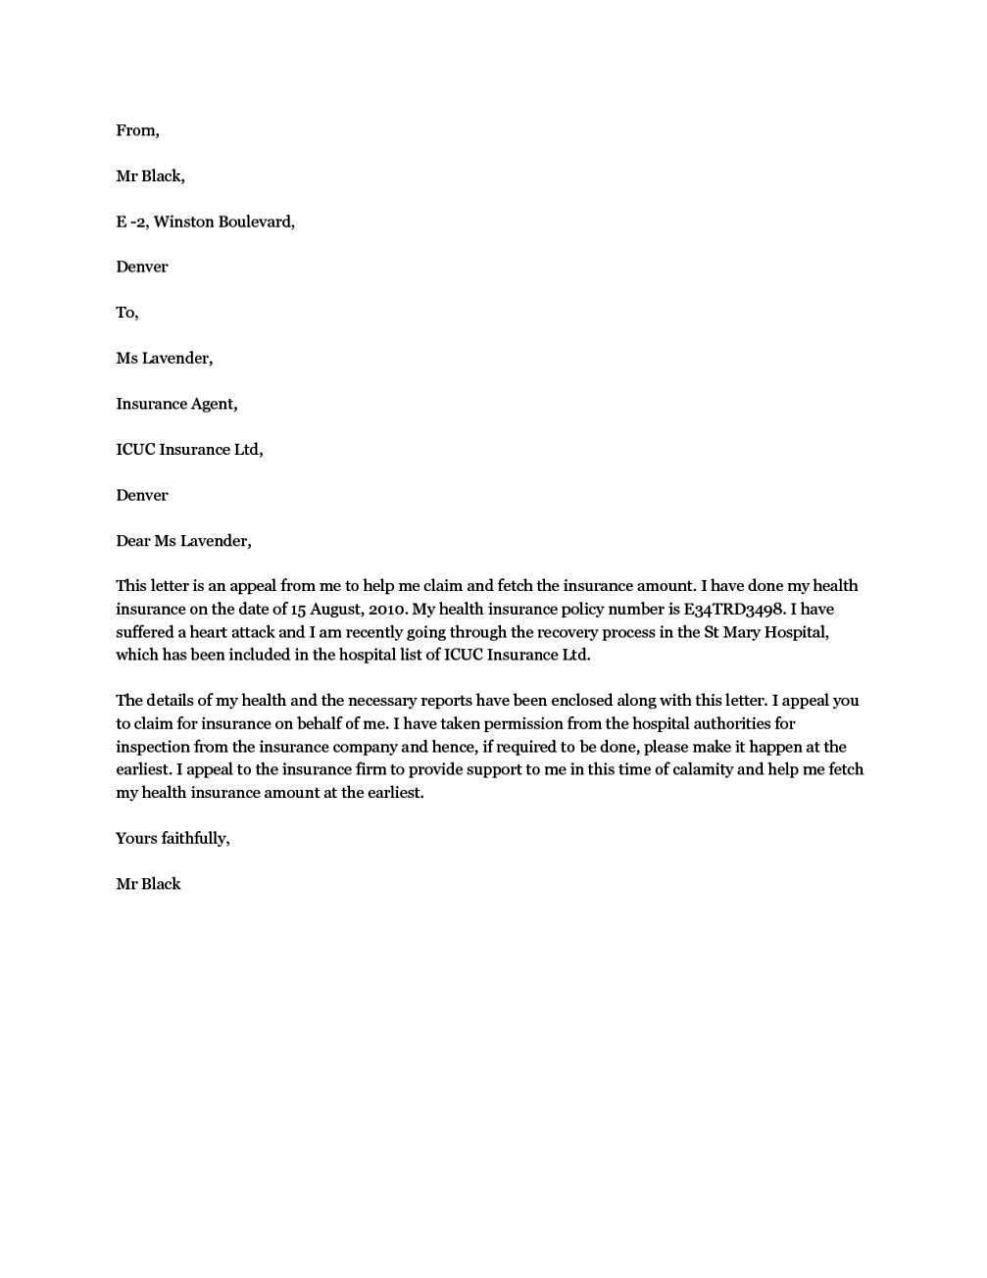 How To Write Appeal Letter To Health Insurance Company ...